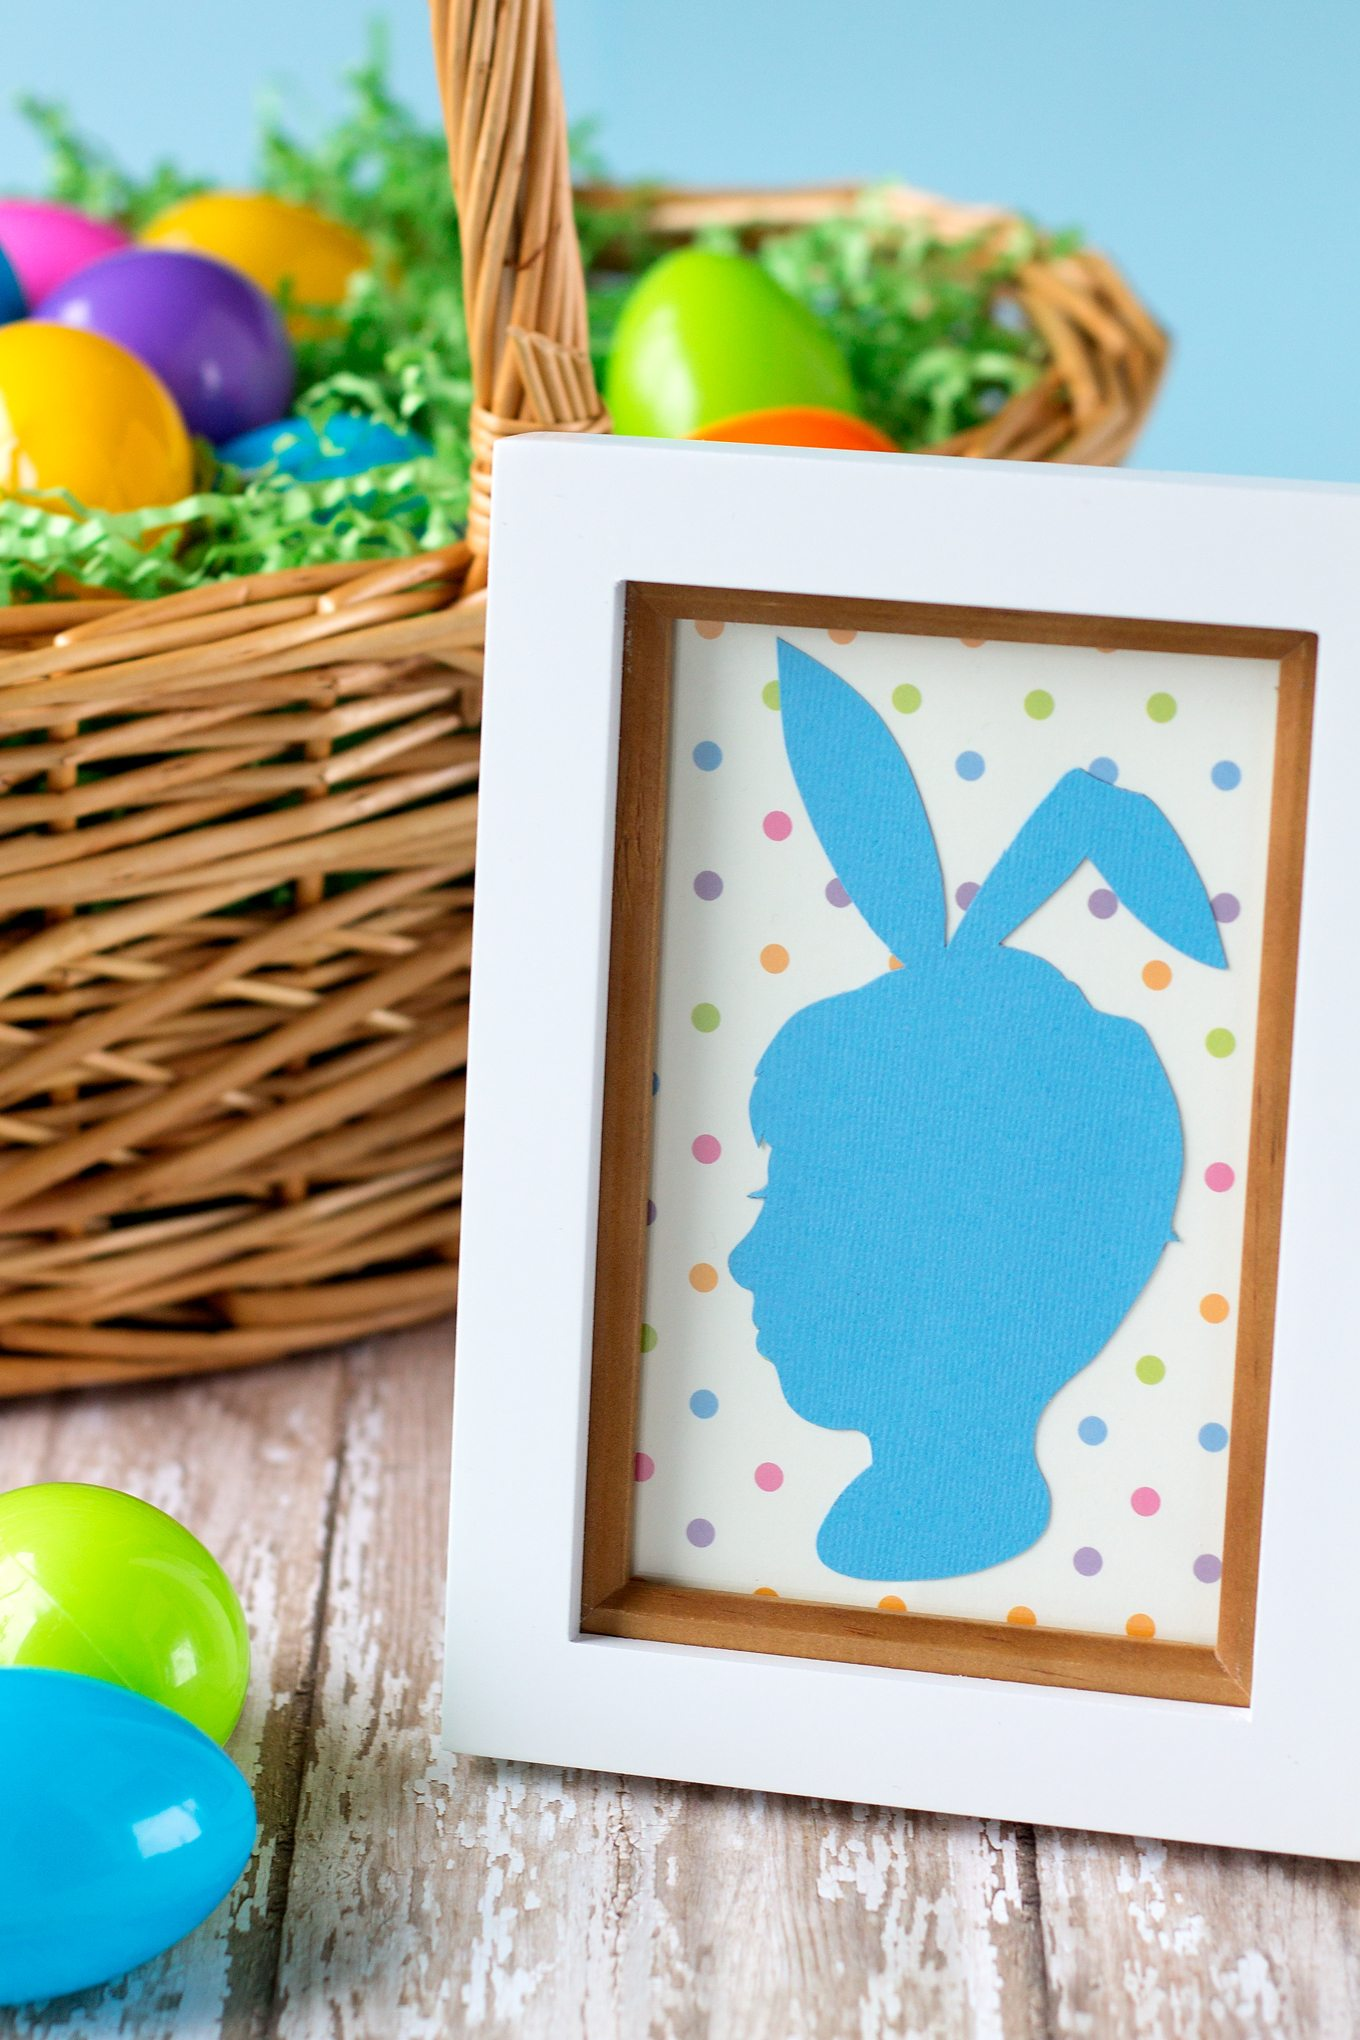 How to Make an Easter Silhouette Portrait